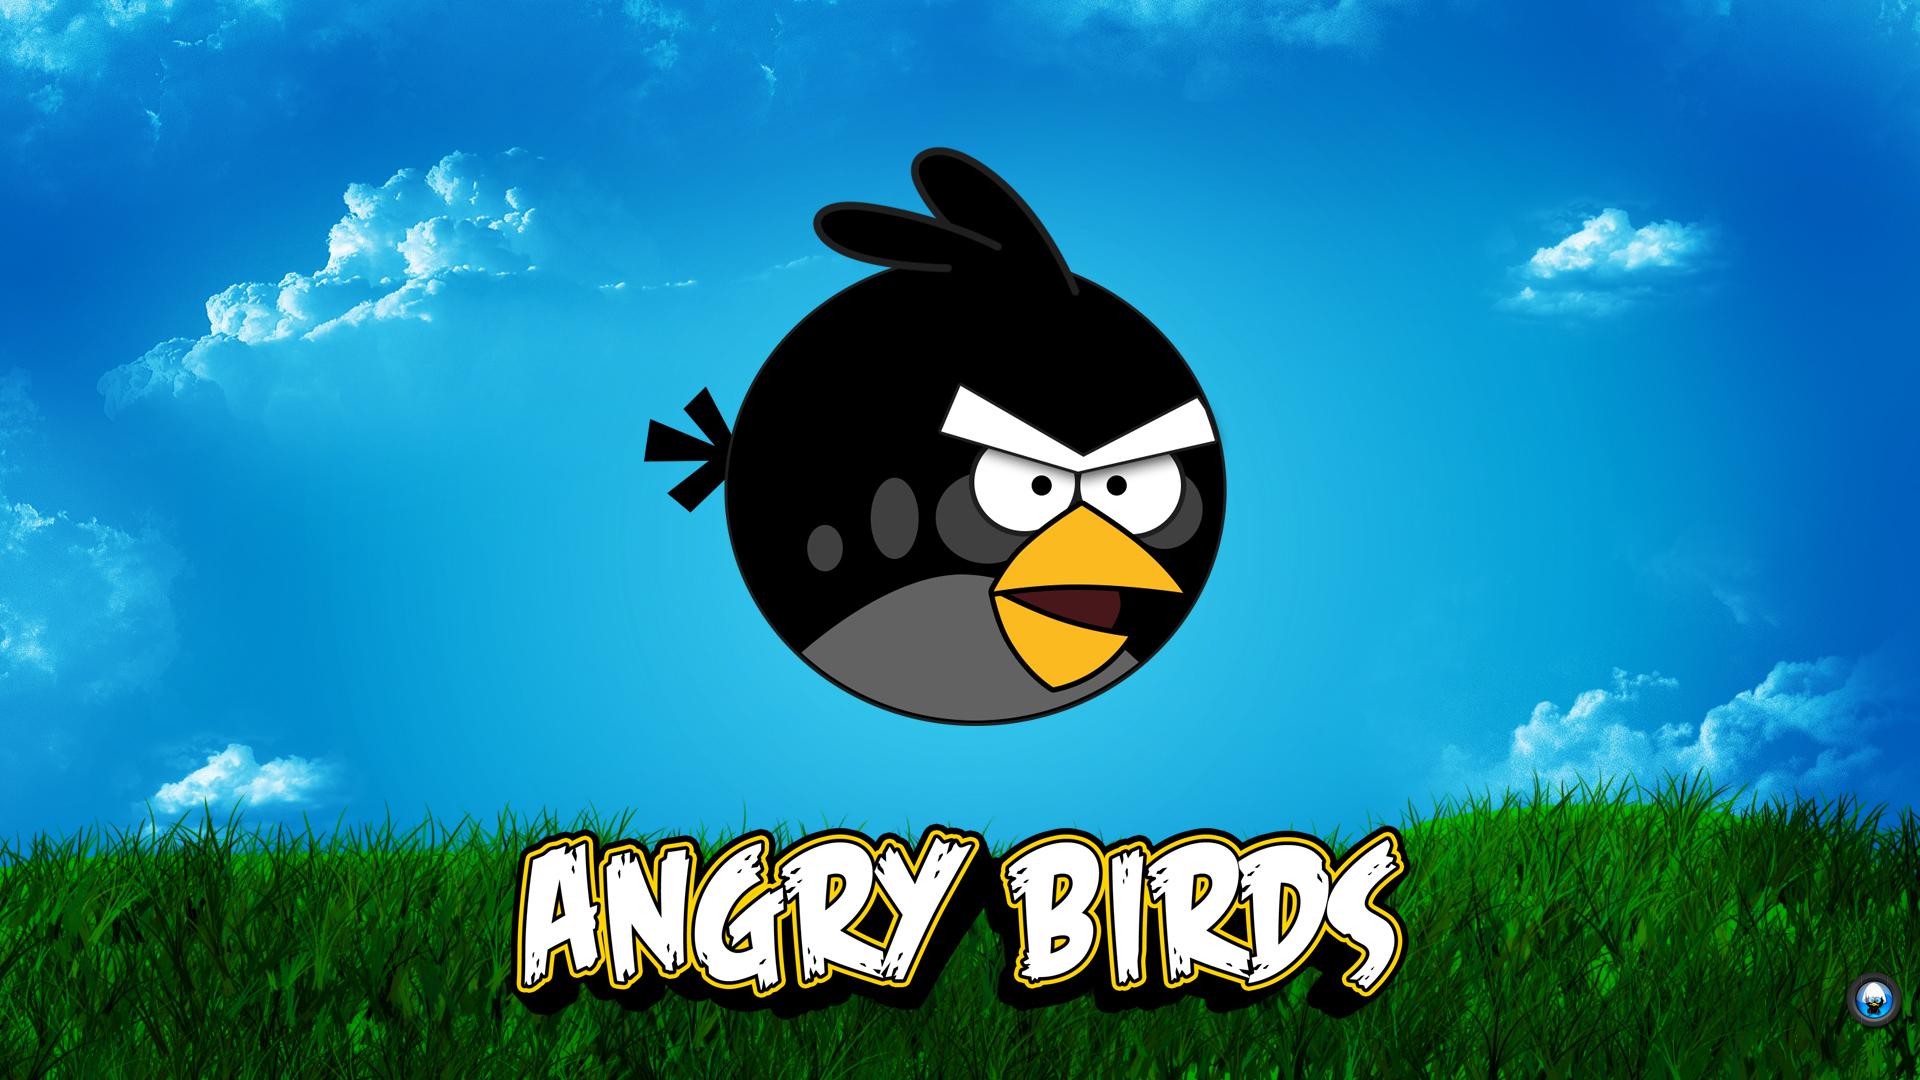 Angry Birds Wallpapers Wallpapers High Quality